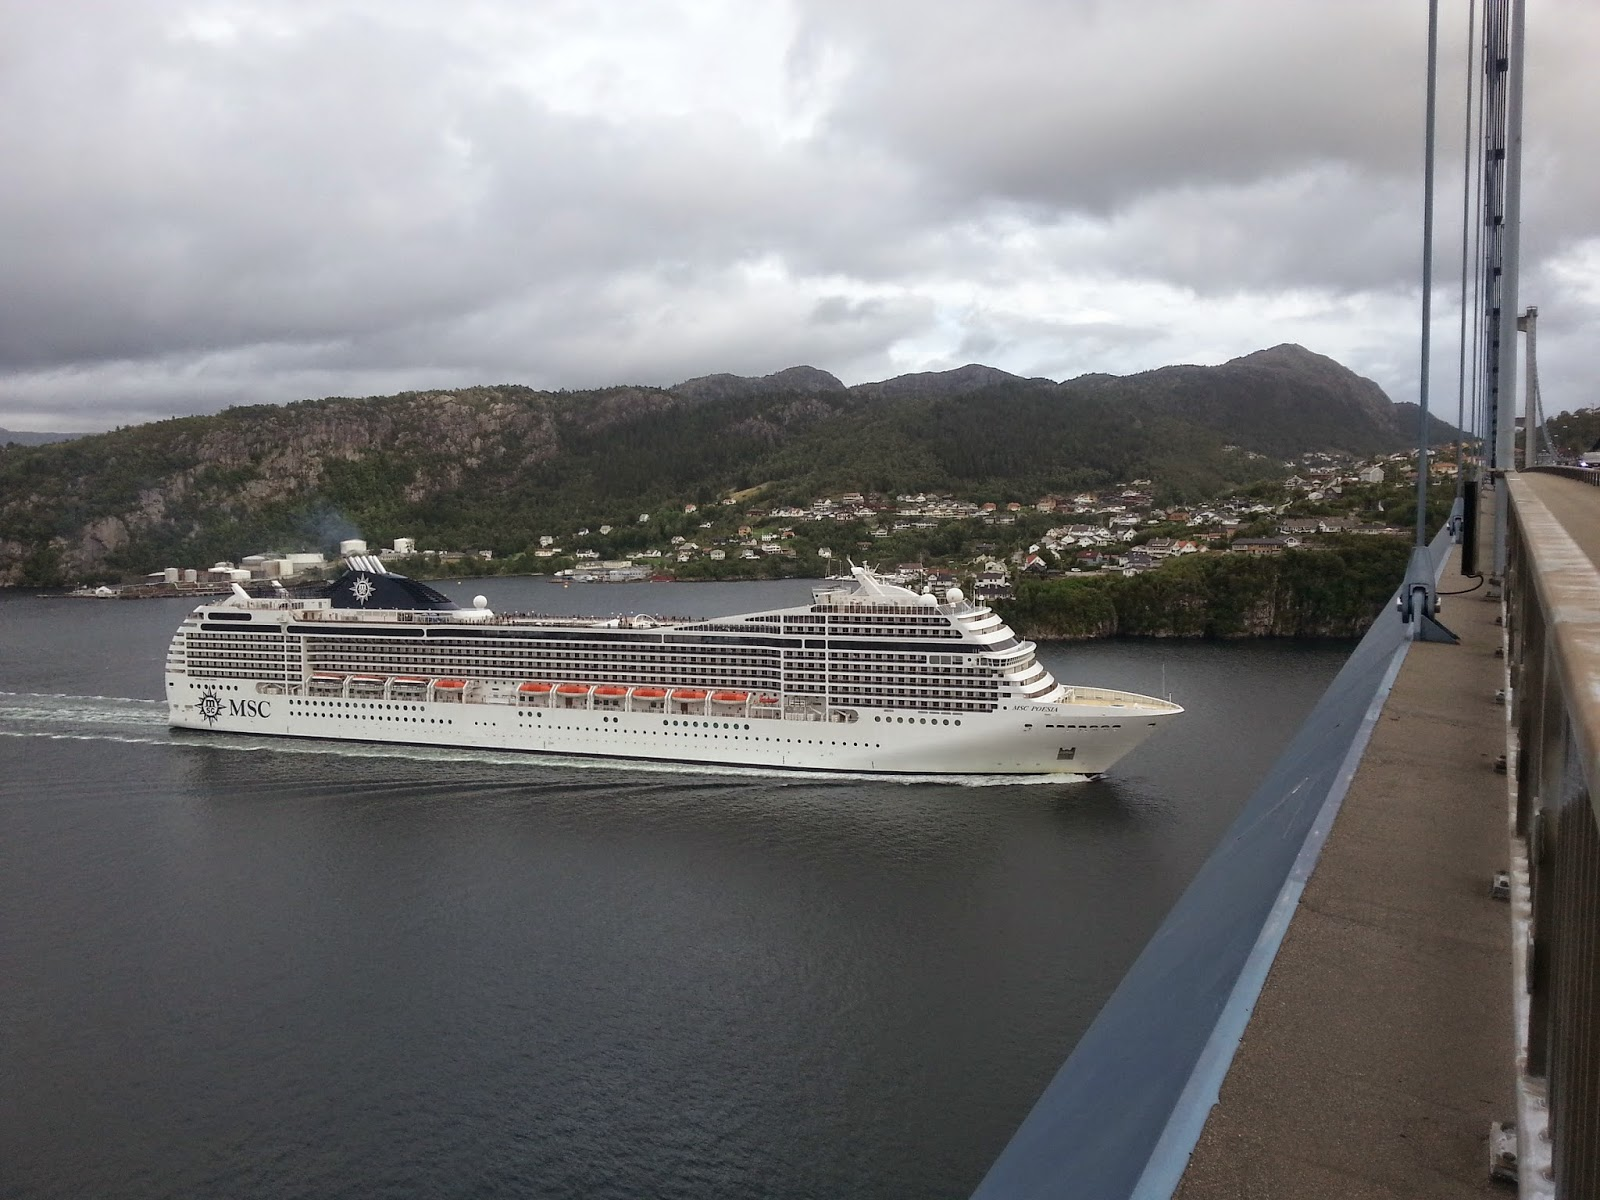 Cruise Ship MSC Poesia passes under the Askøy Bridge, Bergen